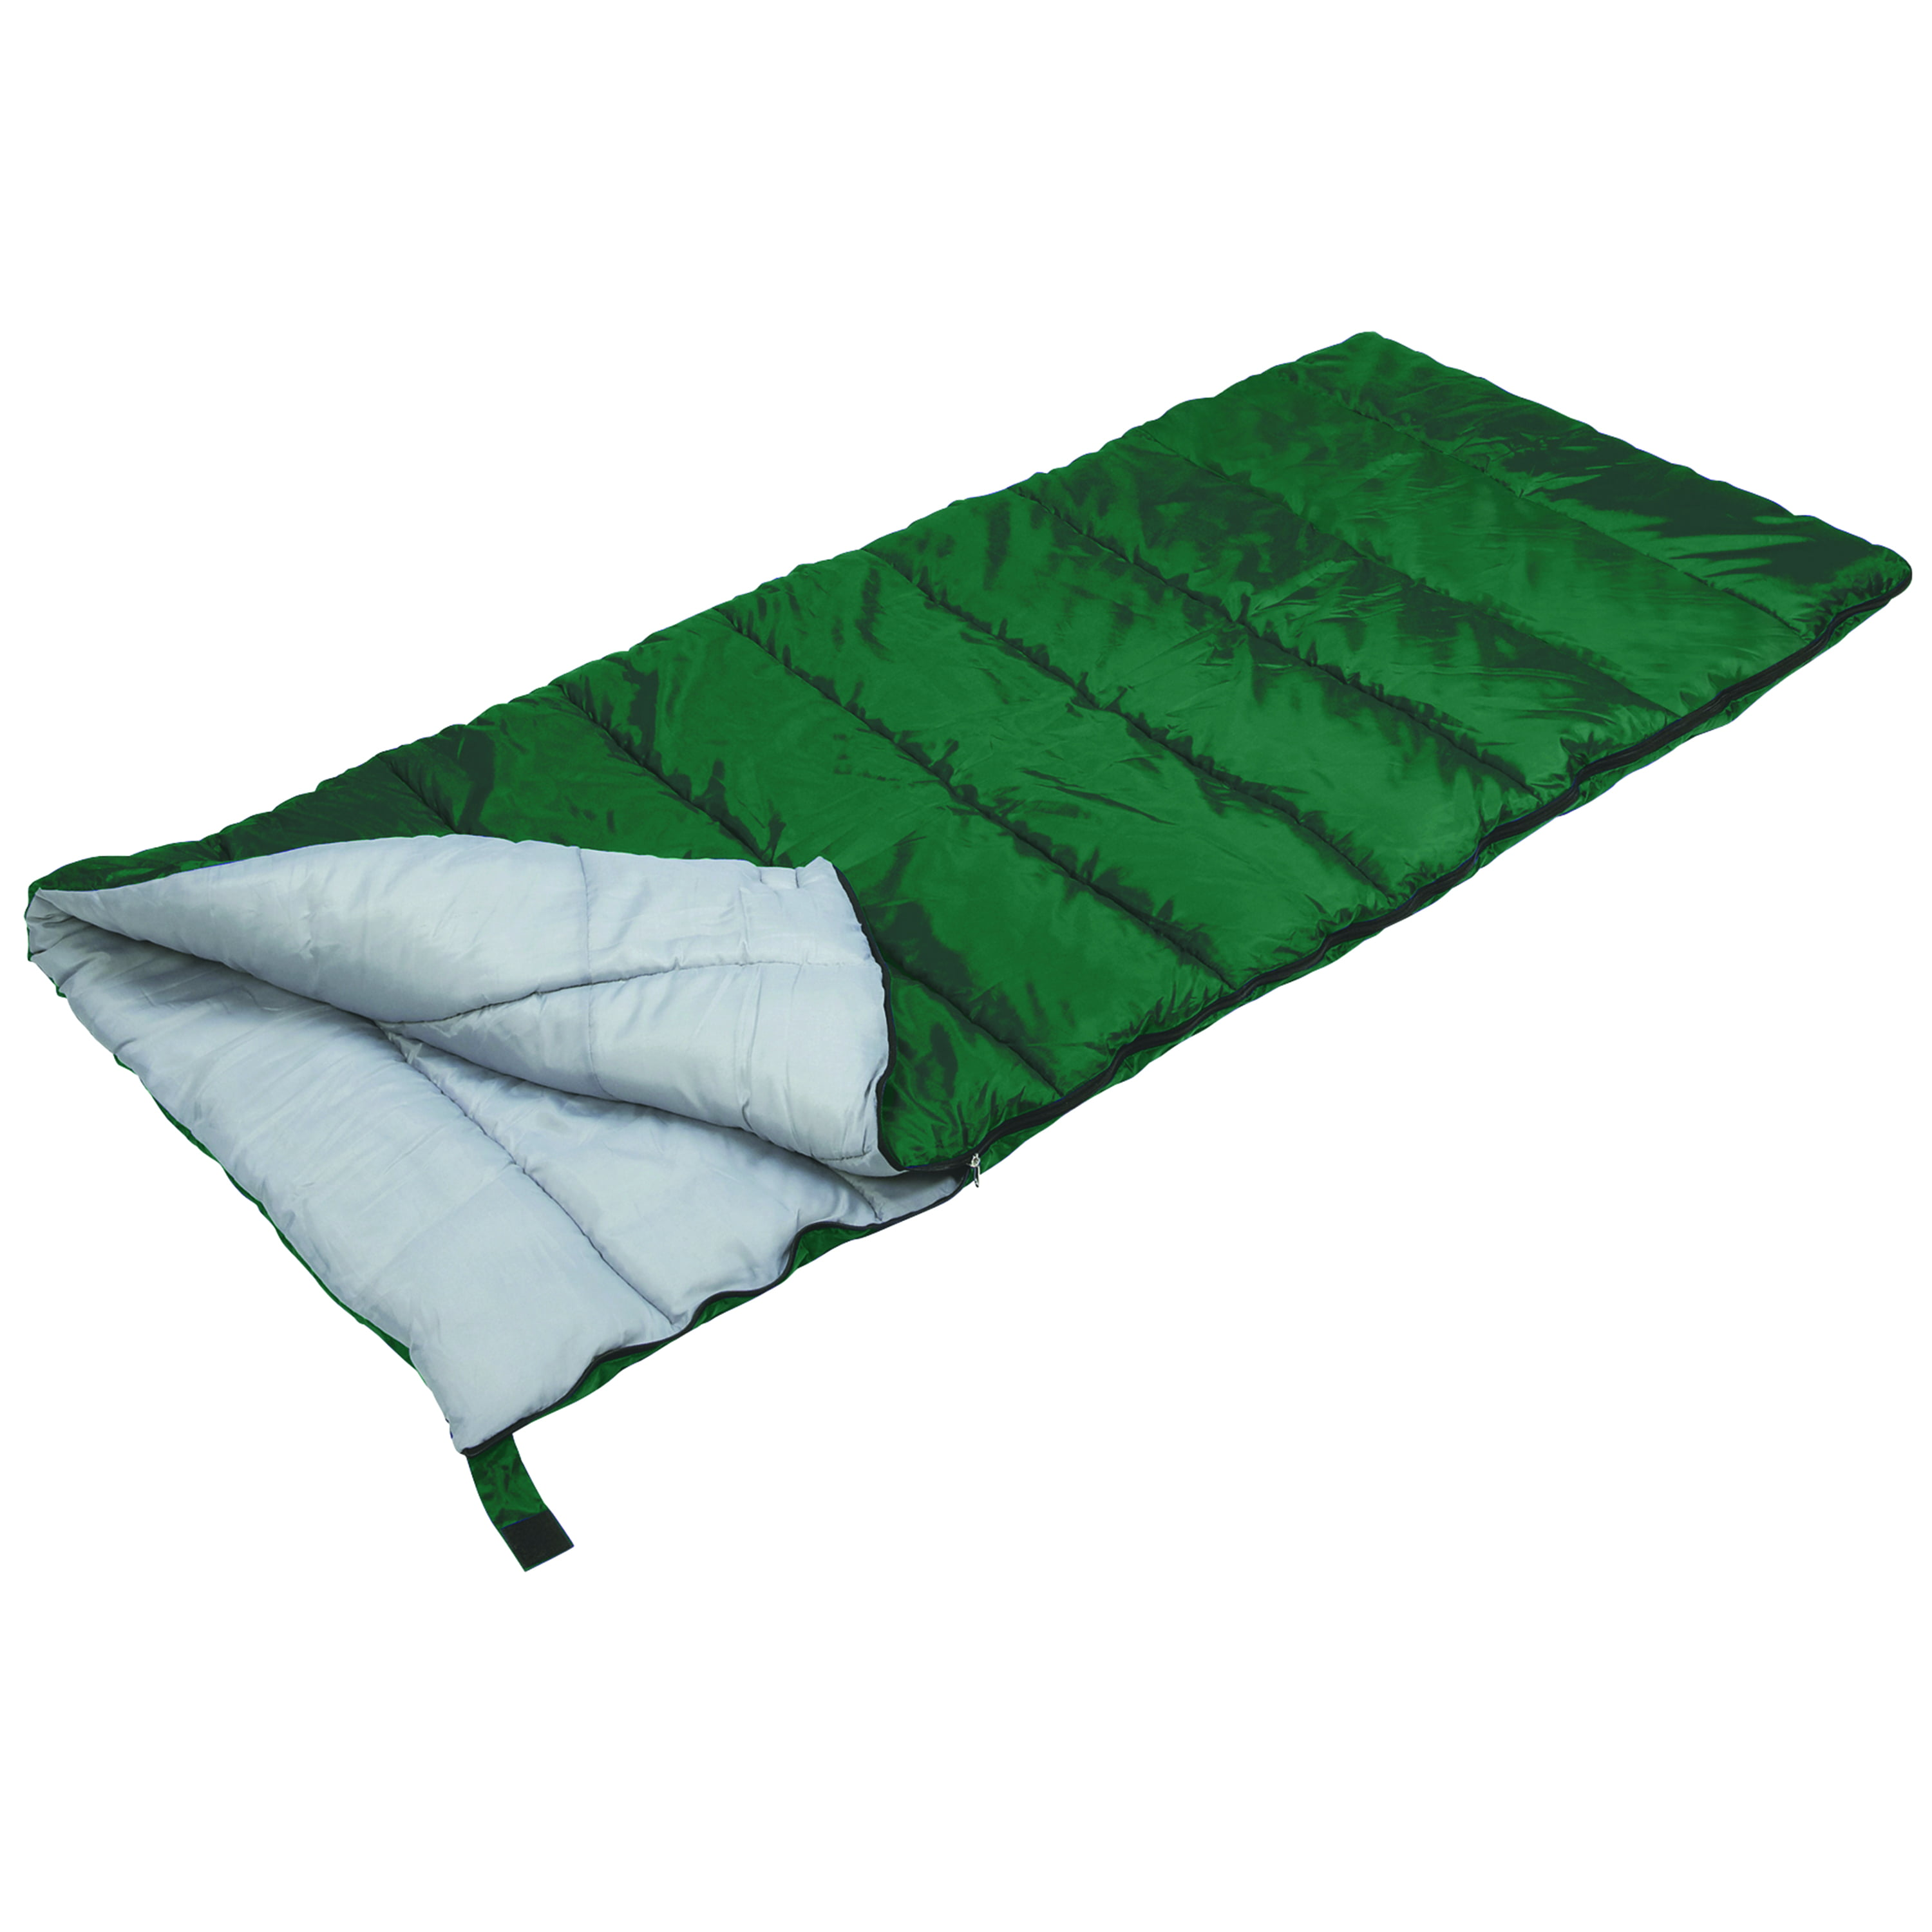 Stansport Sleeping Bag, Forest Green by Stansport